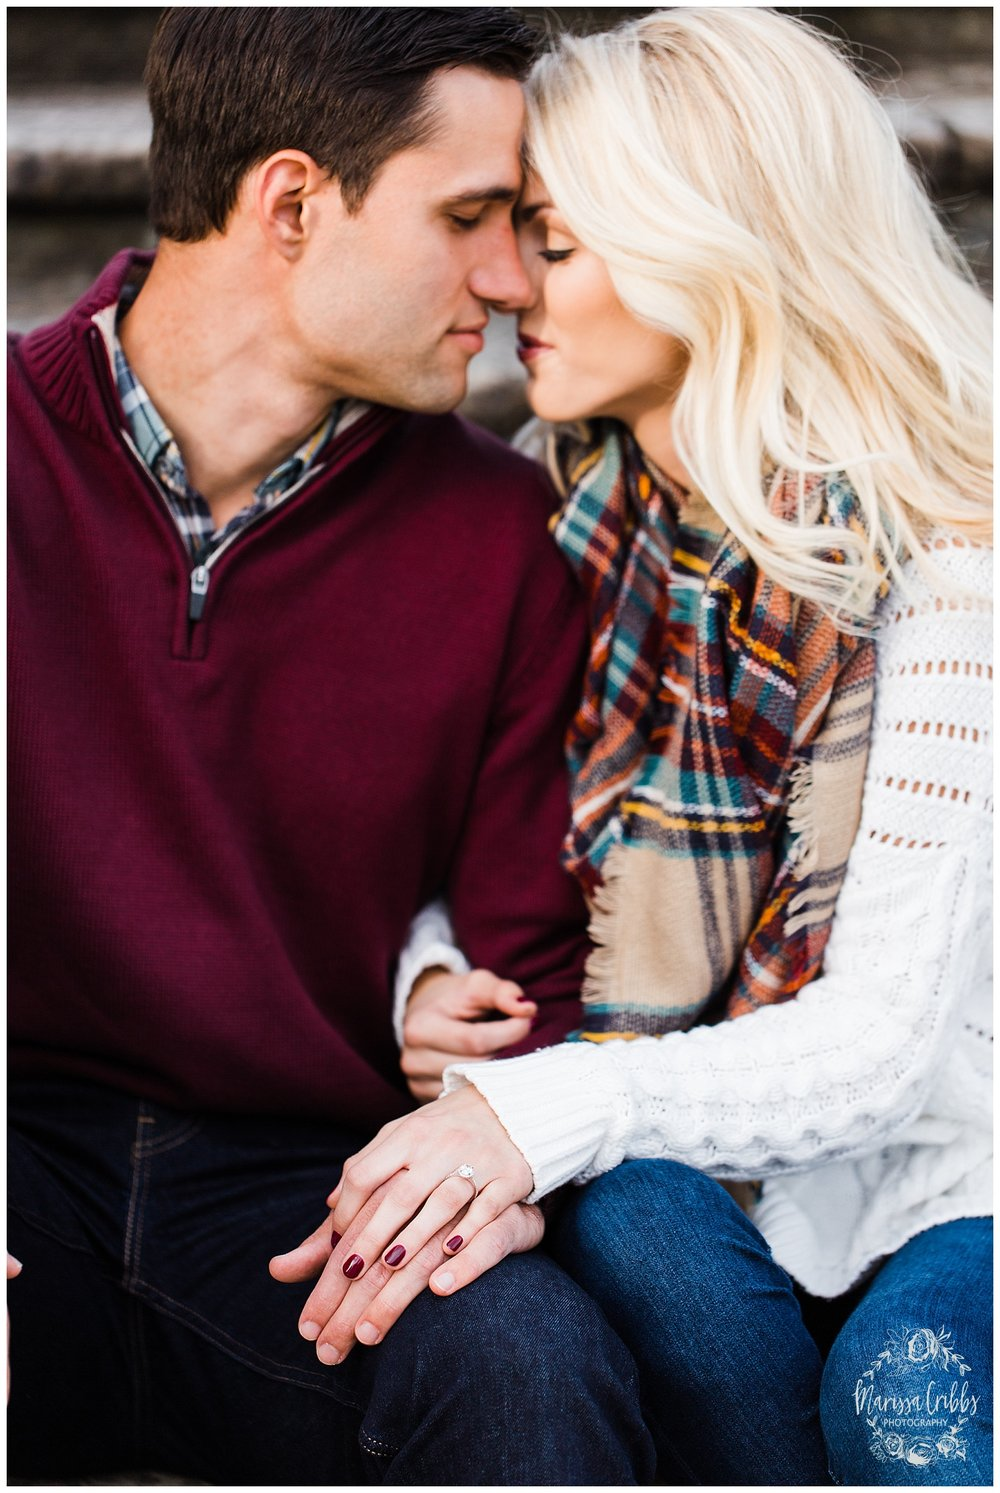 CLOE & GABE LIBERTY MEMORIAL ENGAGEMENT | MARISSA CRIBBS PHOTOGRAPHY | LOOSE PARK ENGAGEMENT_3448.jpg